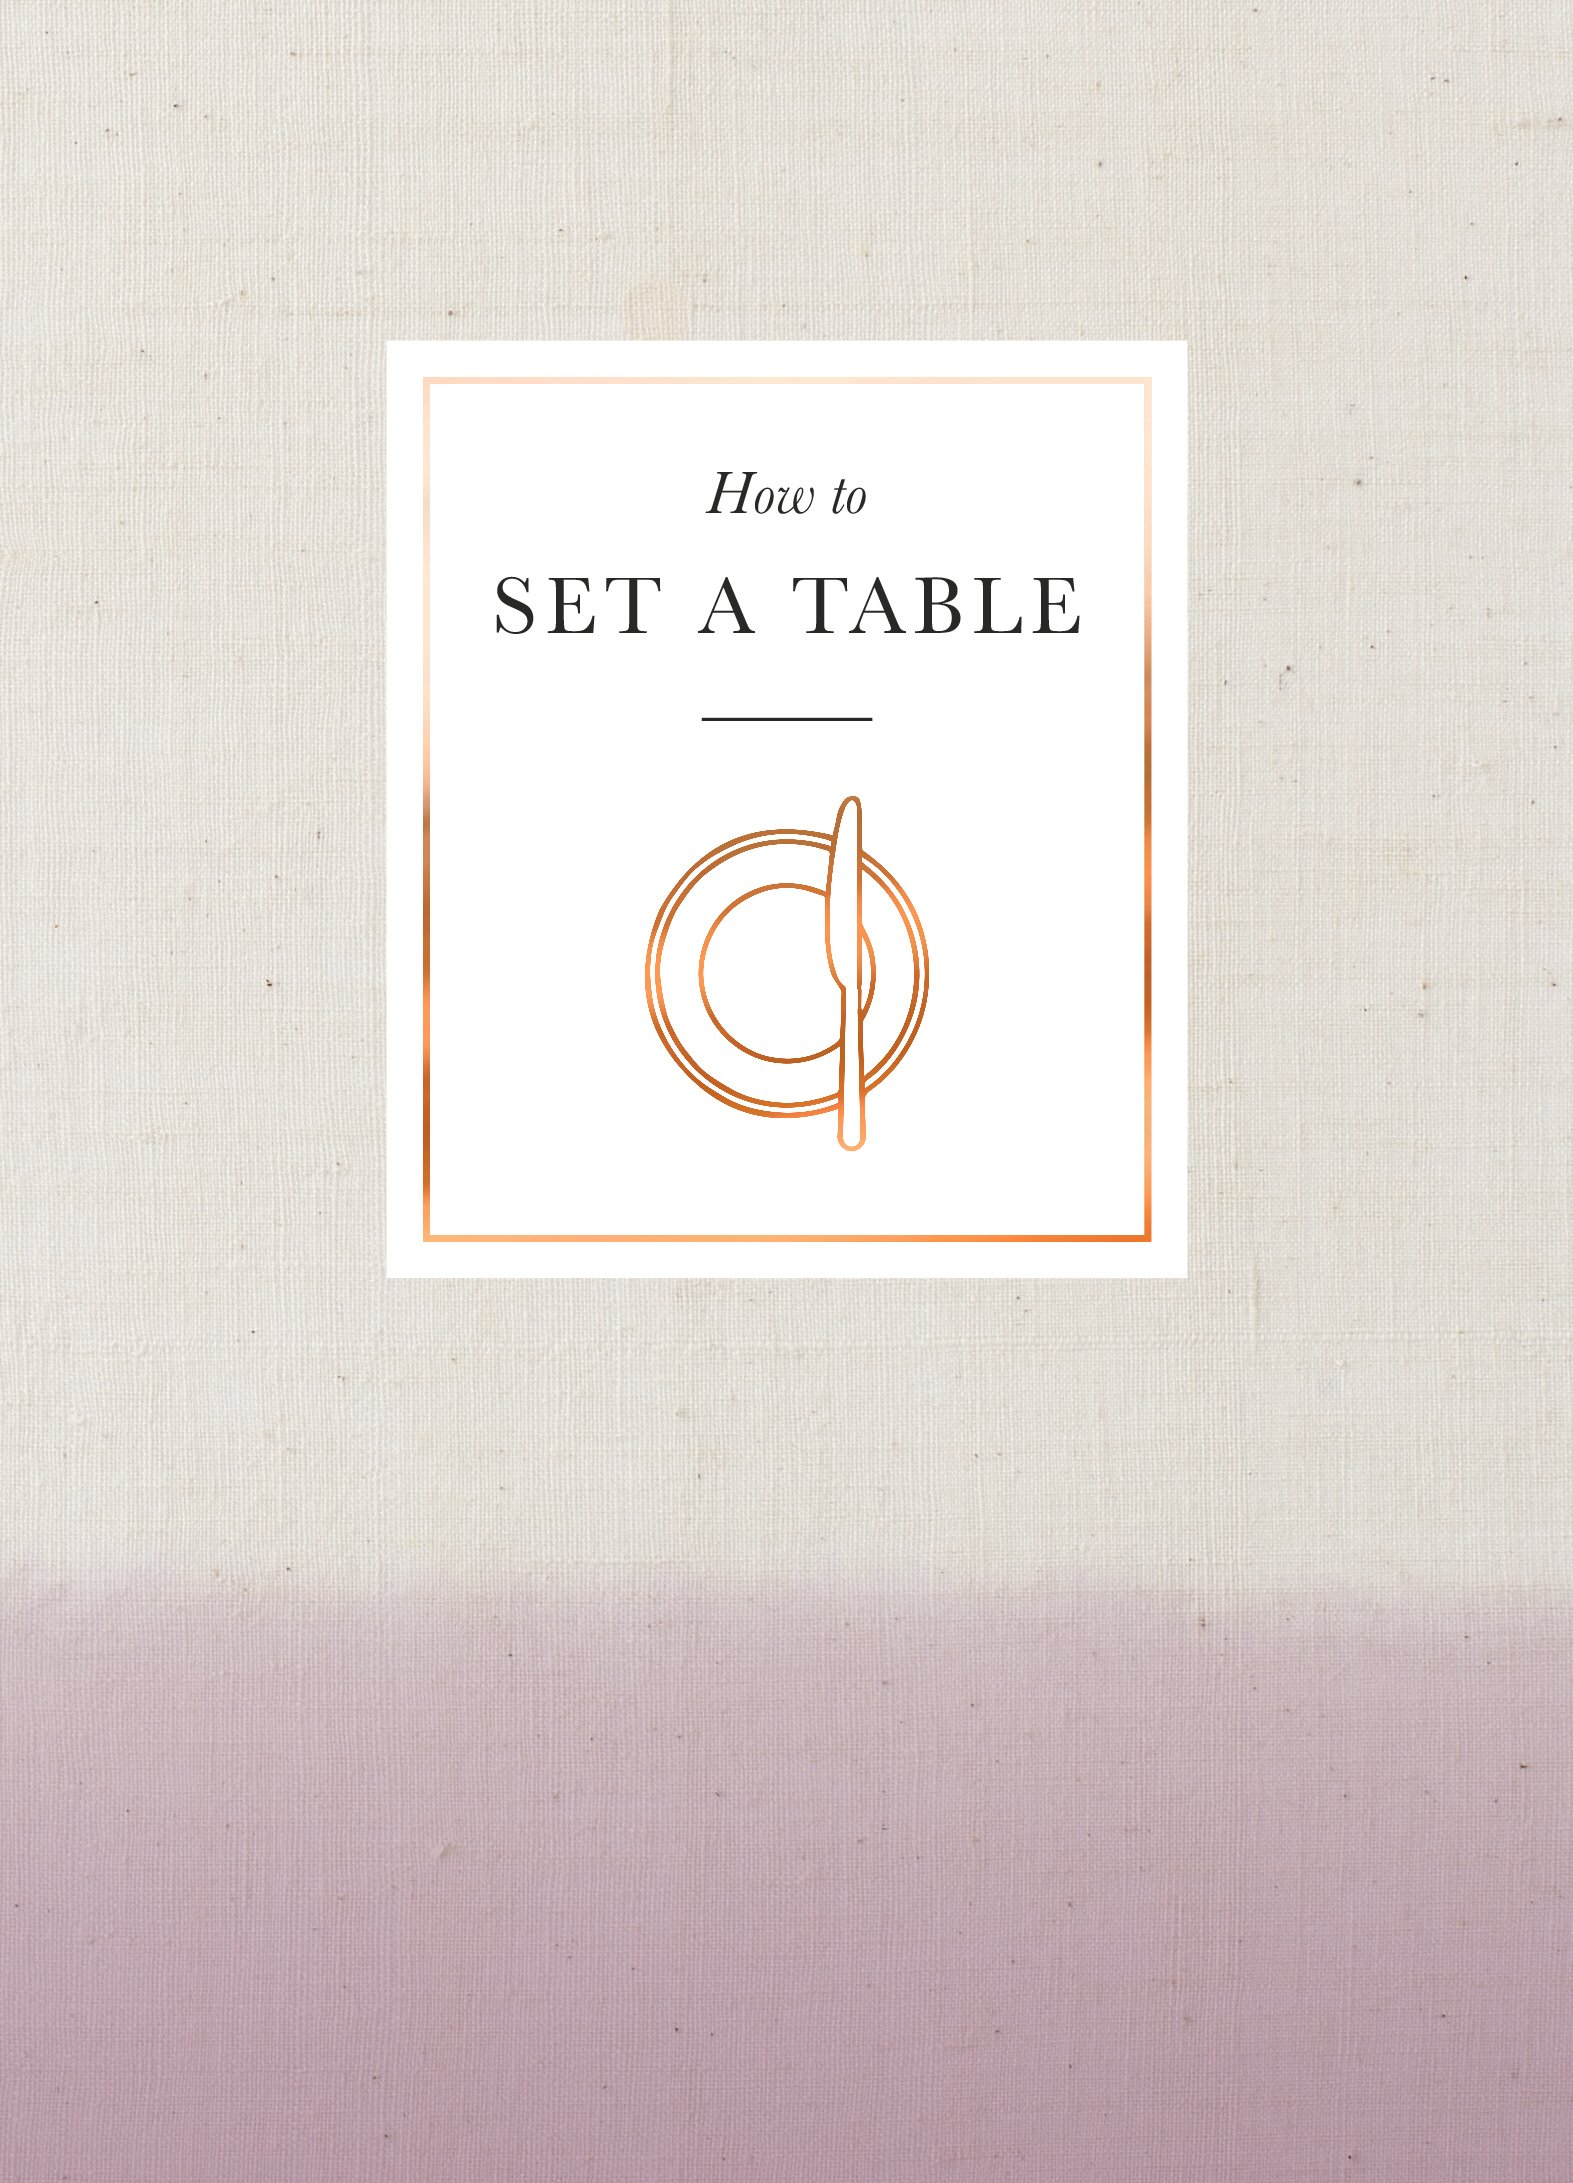 How to Set a Table: Inspiration, ideas and etiquette for hosting friends and family